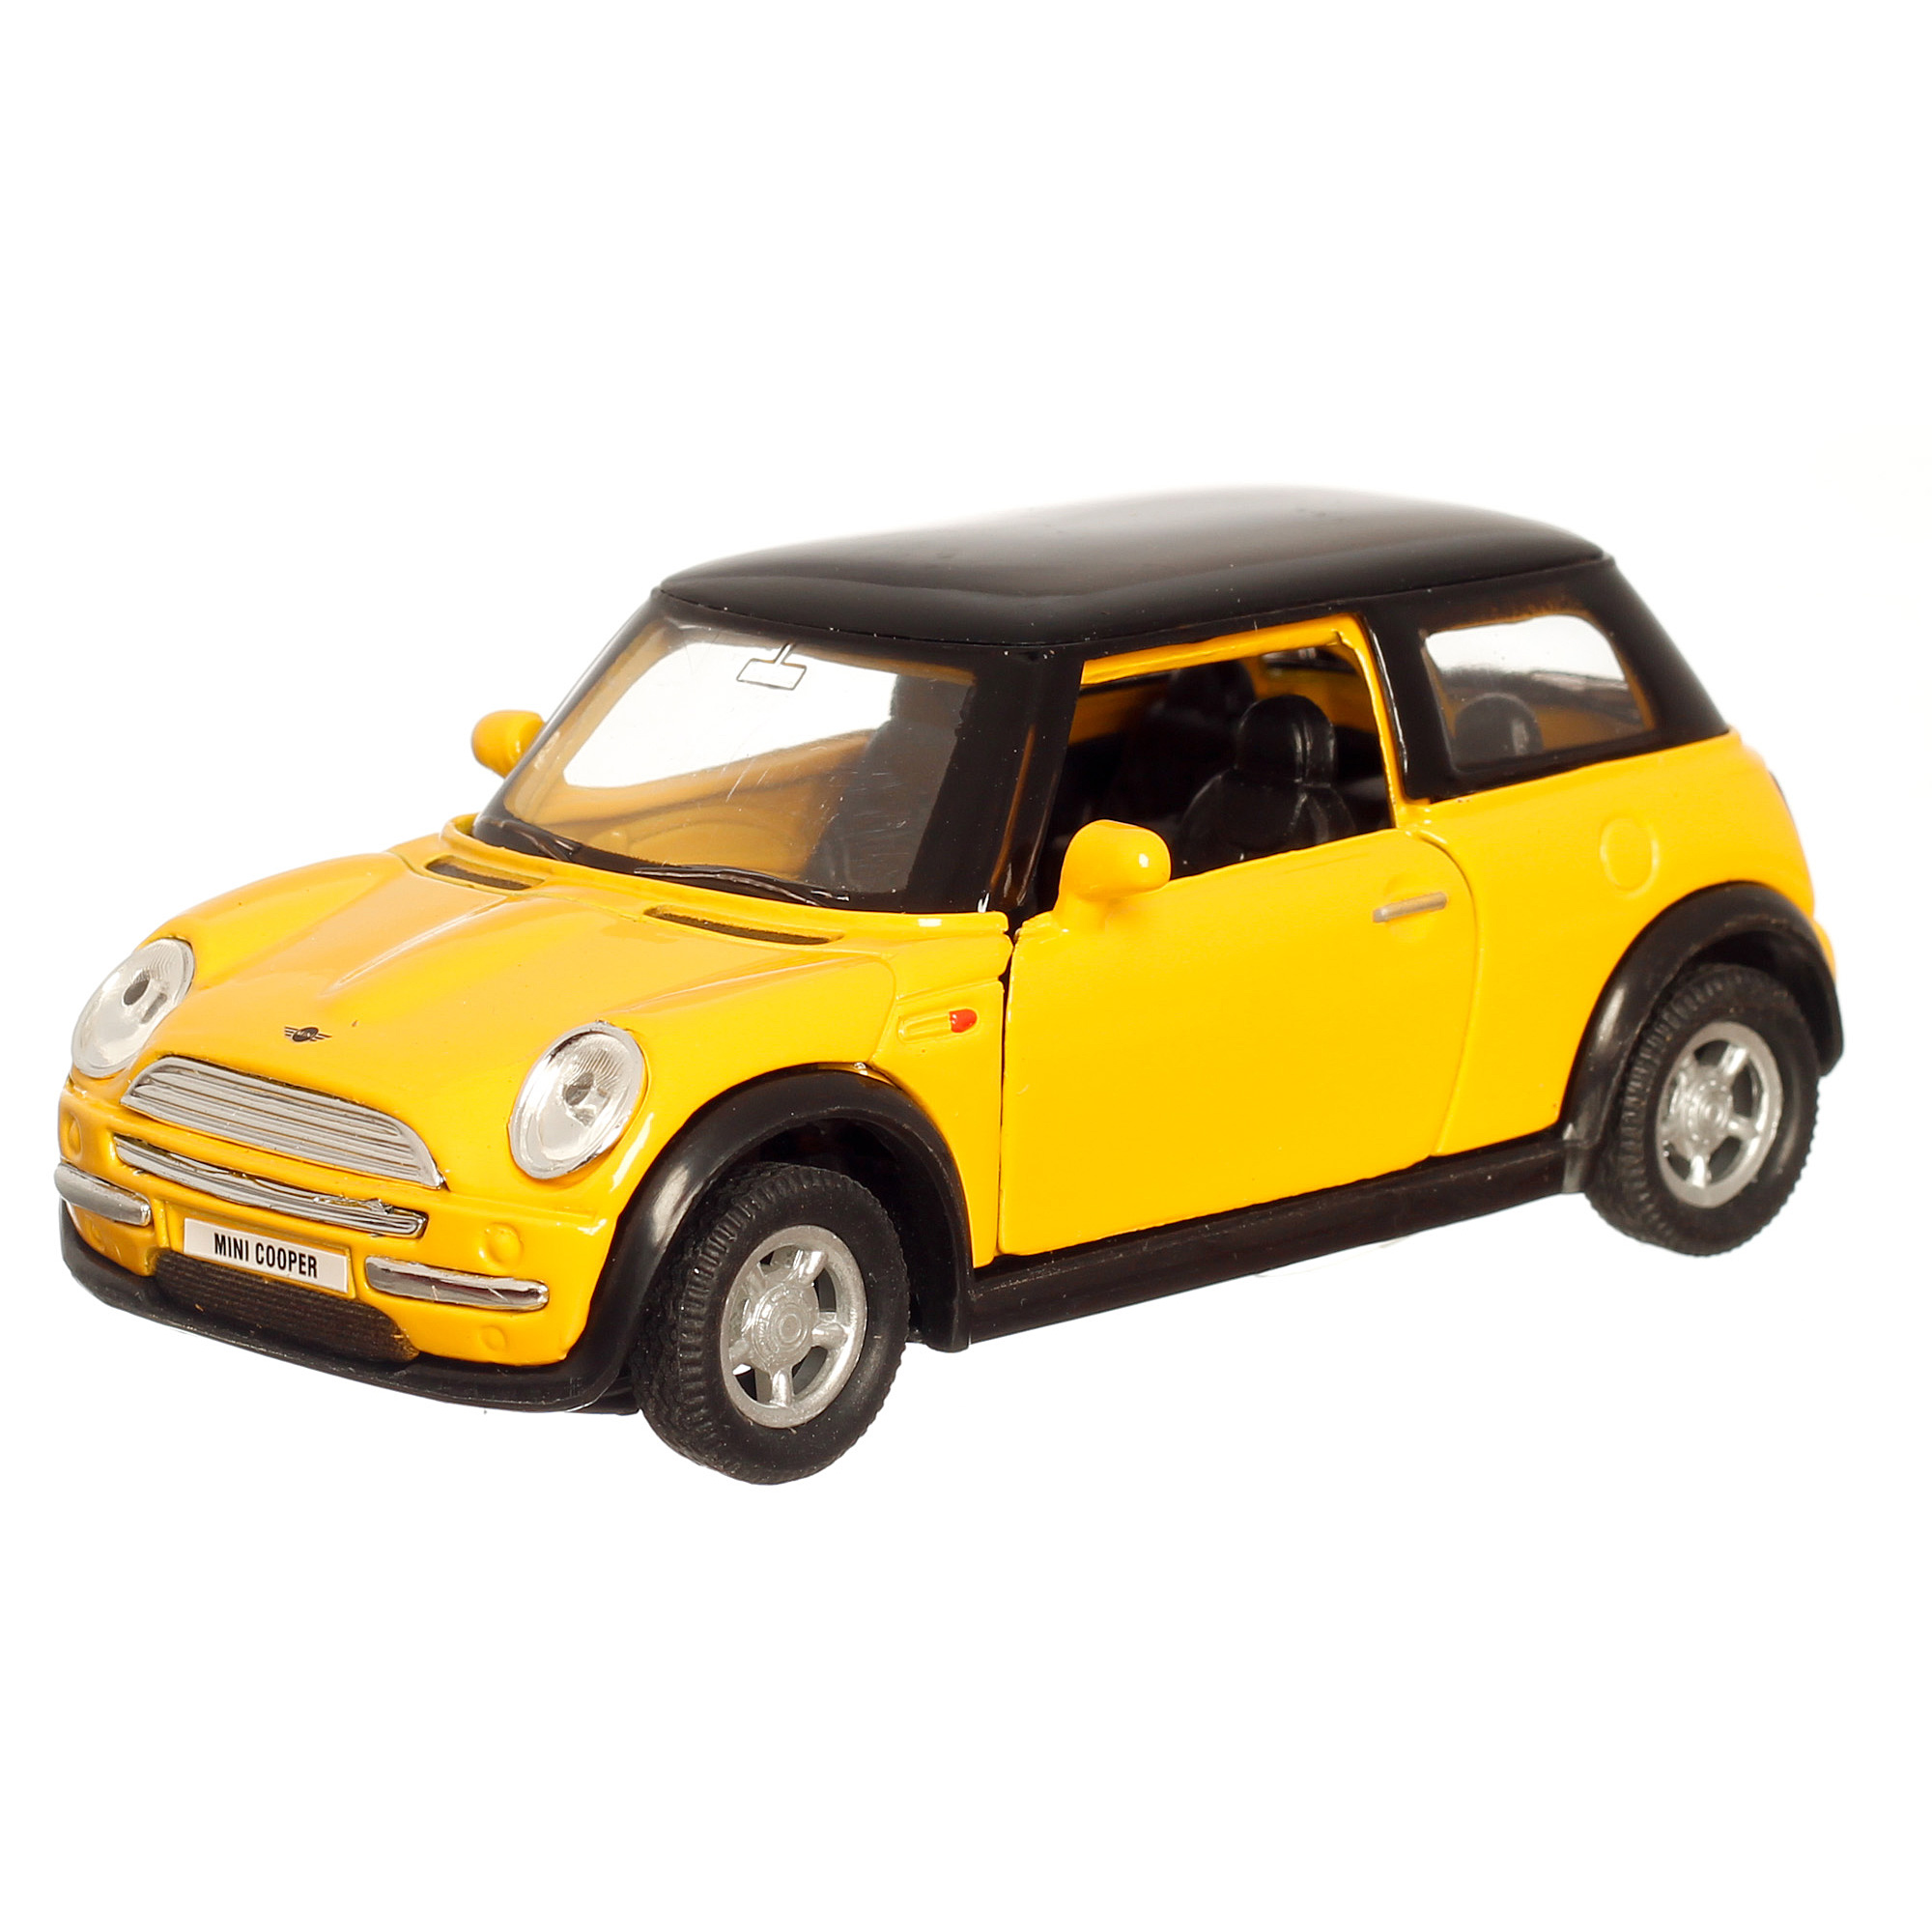 mini cooper metall 10cm gelb modellauto ebay. Black Bedroom Furniture Sets. Home Design Ideas